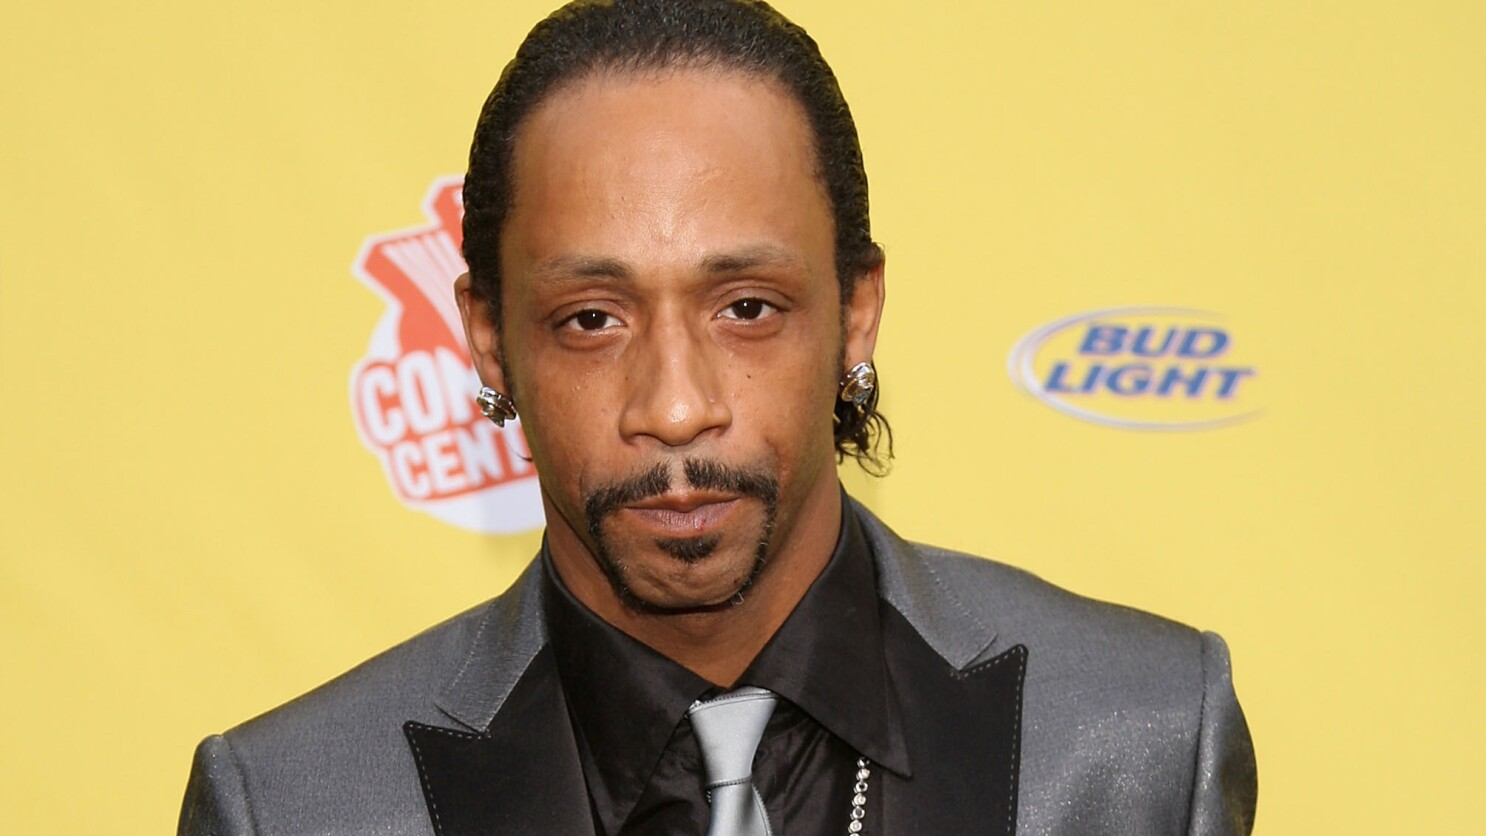 Katt Williams Released On Bond Following Fight With Teen Los Angeles Times